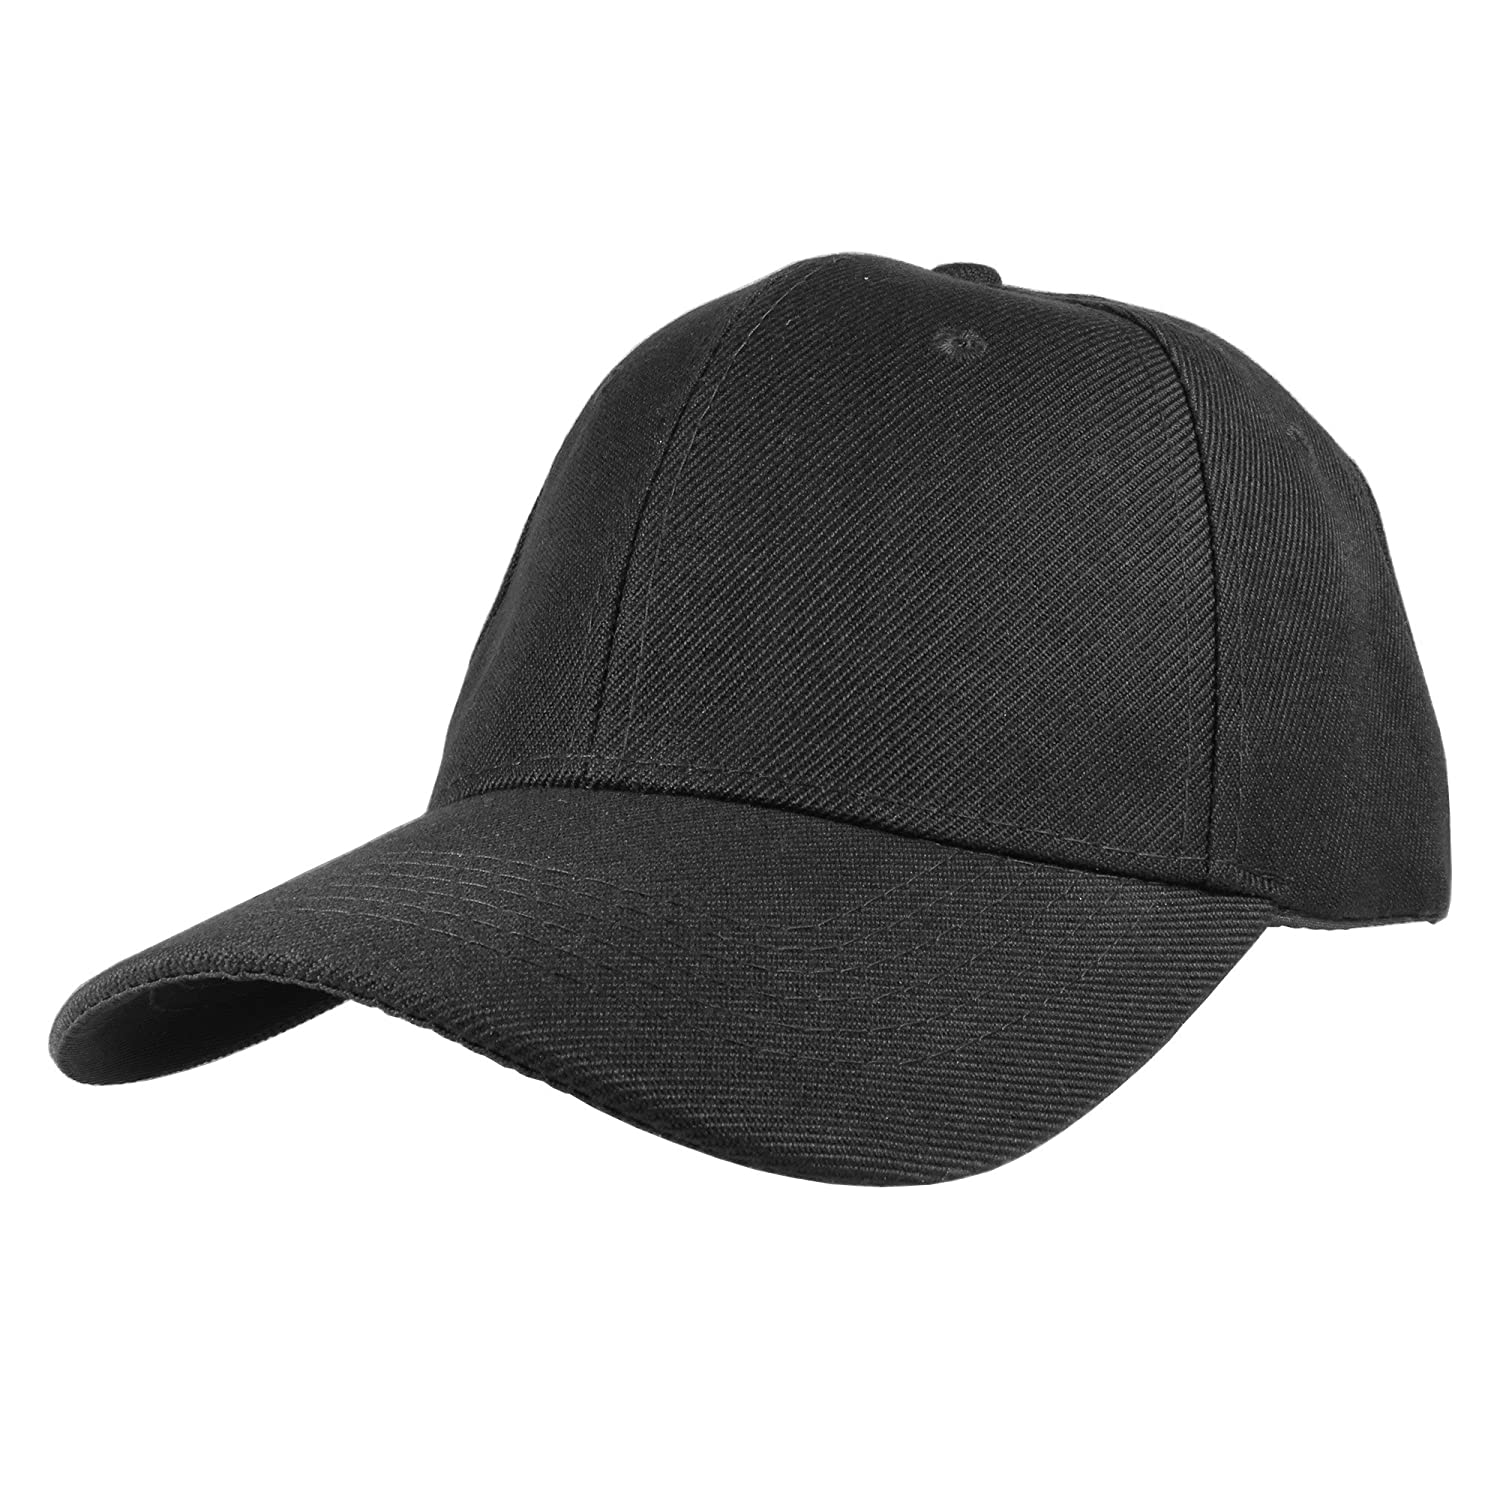 0b59569cff197 Gelante Plain Blank Baseball Caps Adjustable Back Strap Wholesale LOT 12  Pack- 001-Black at Amazon Men s Clothing store